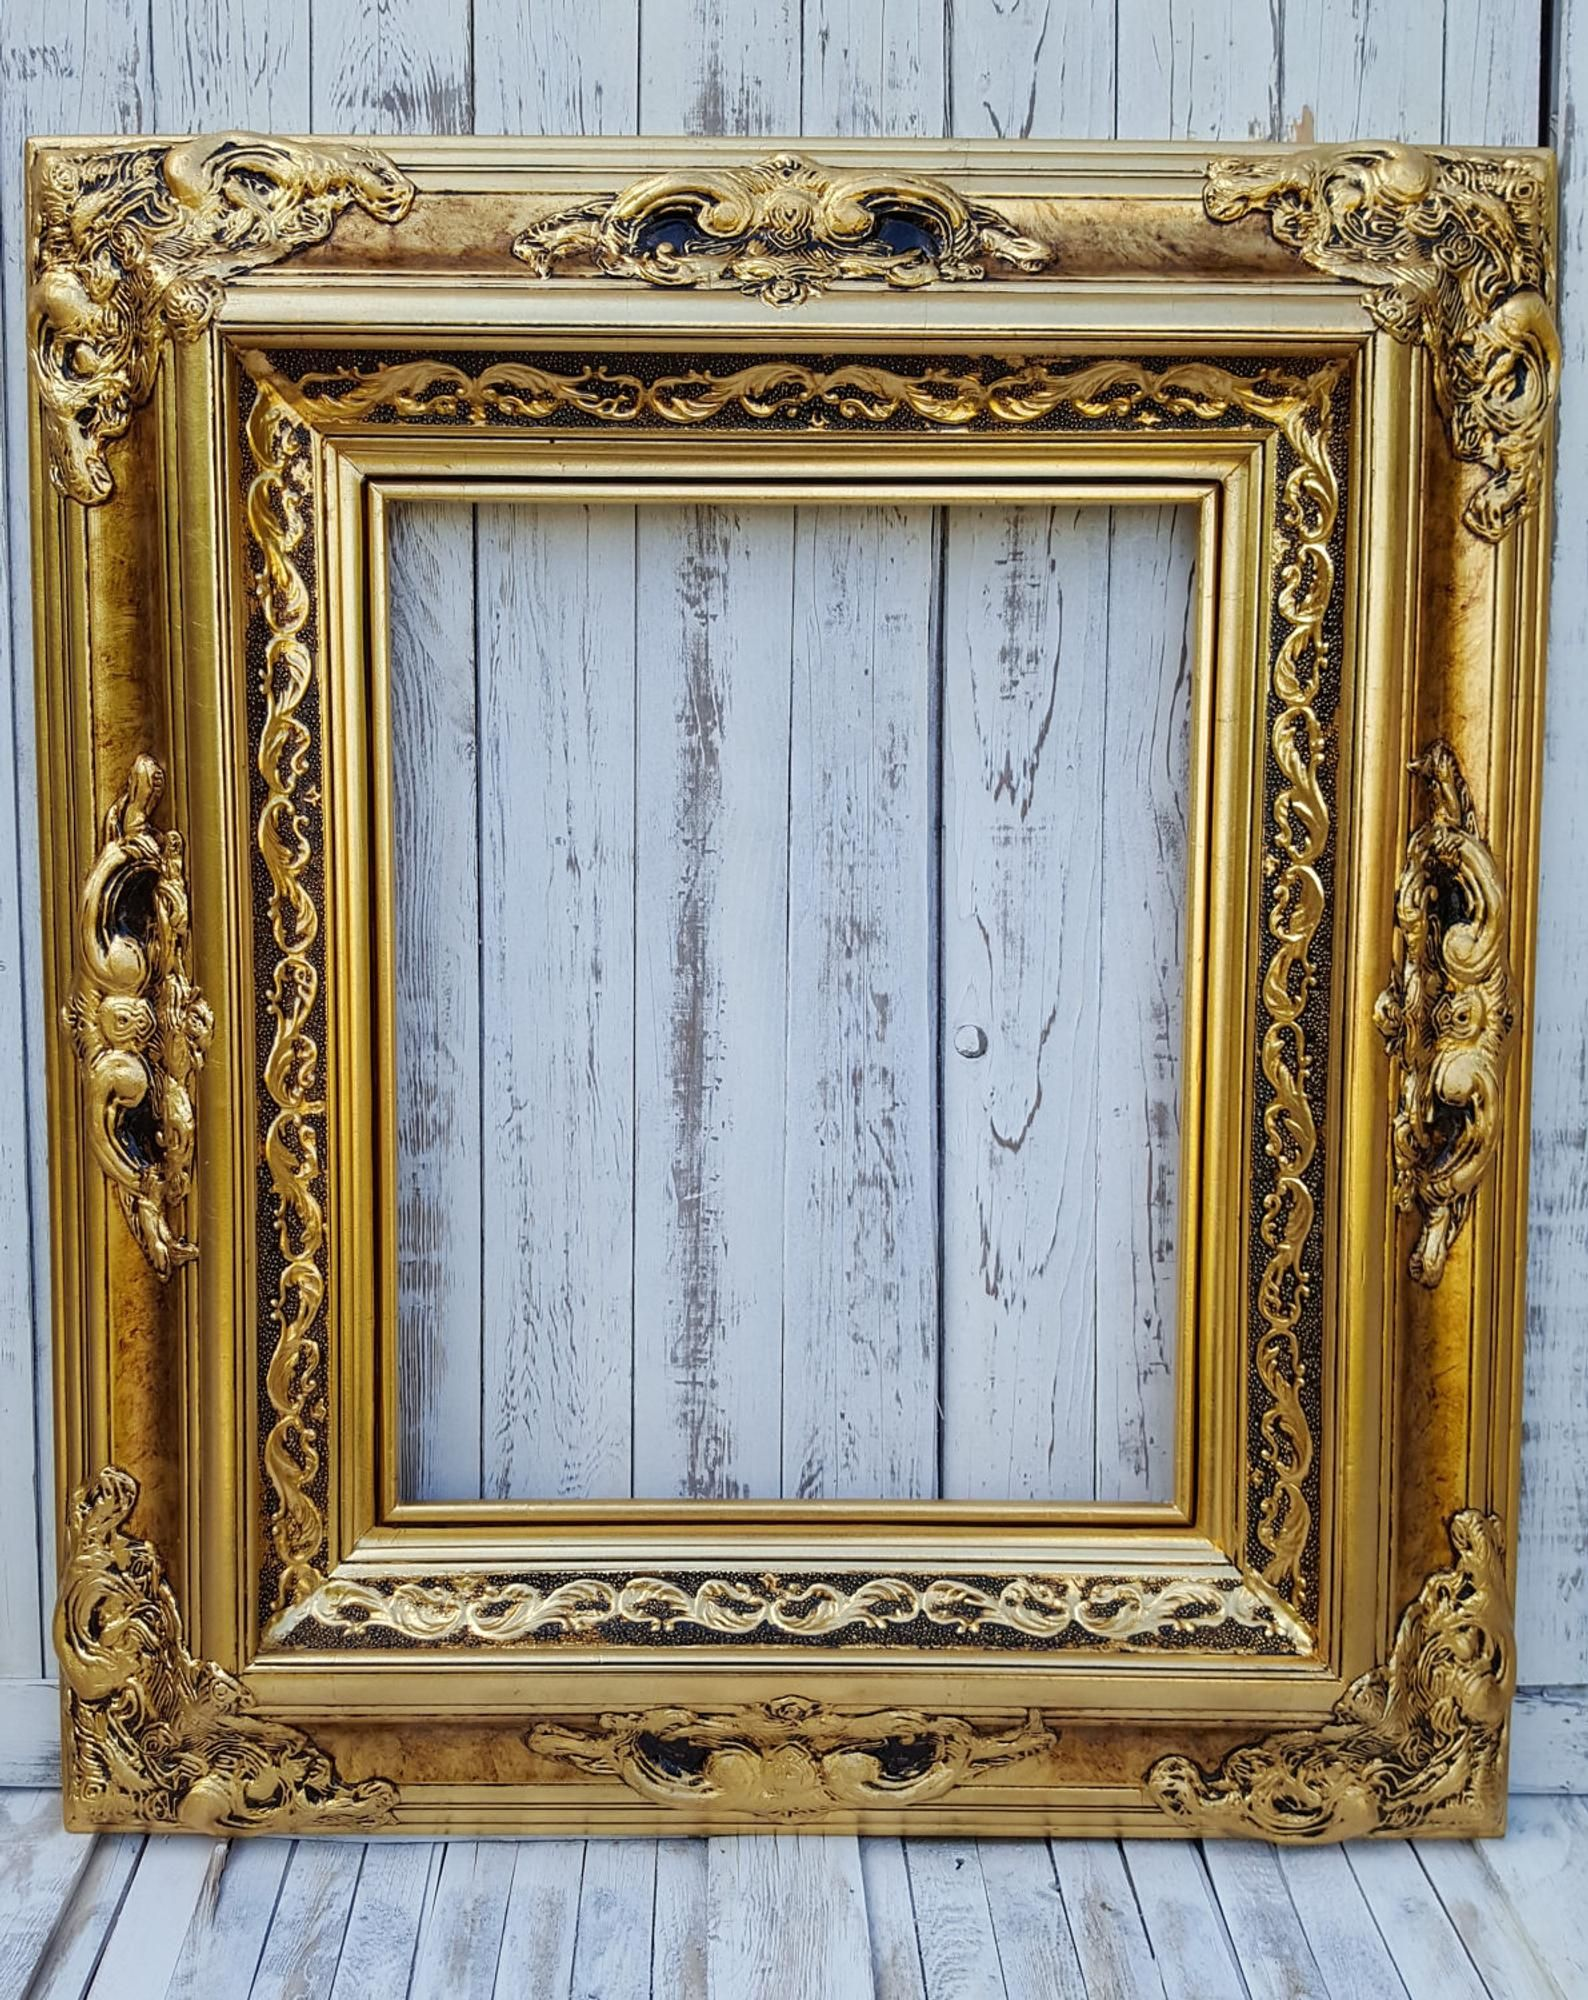 Baroque Victorian Style Frame Antique Gold Photo Etsy Vintage Picture Frames Gold Picture Frames Painting Frames